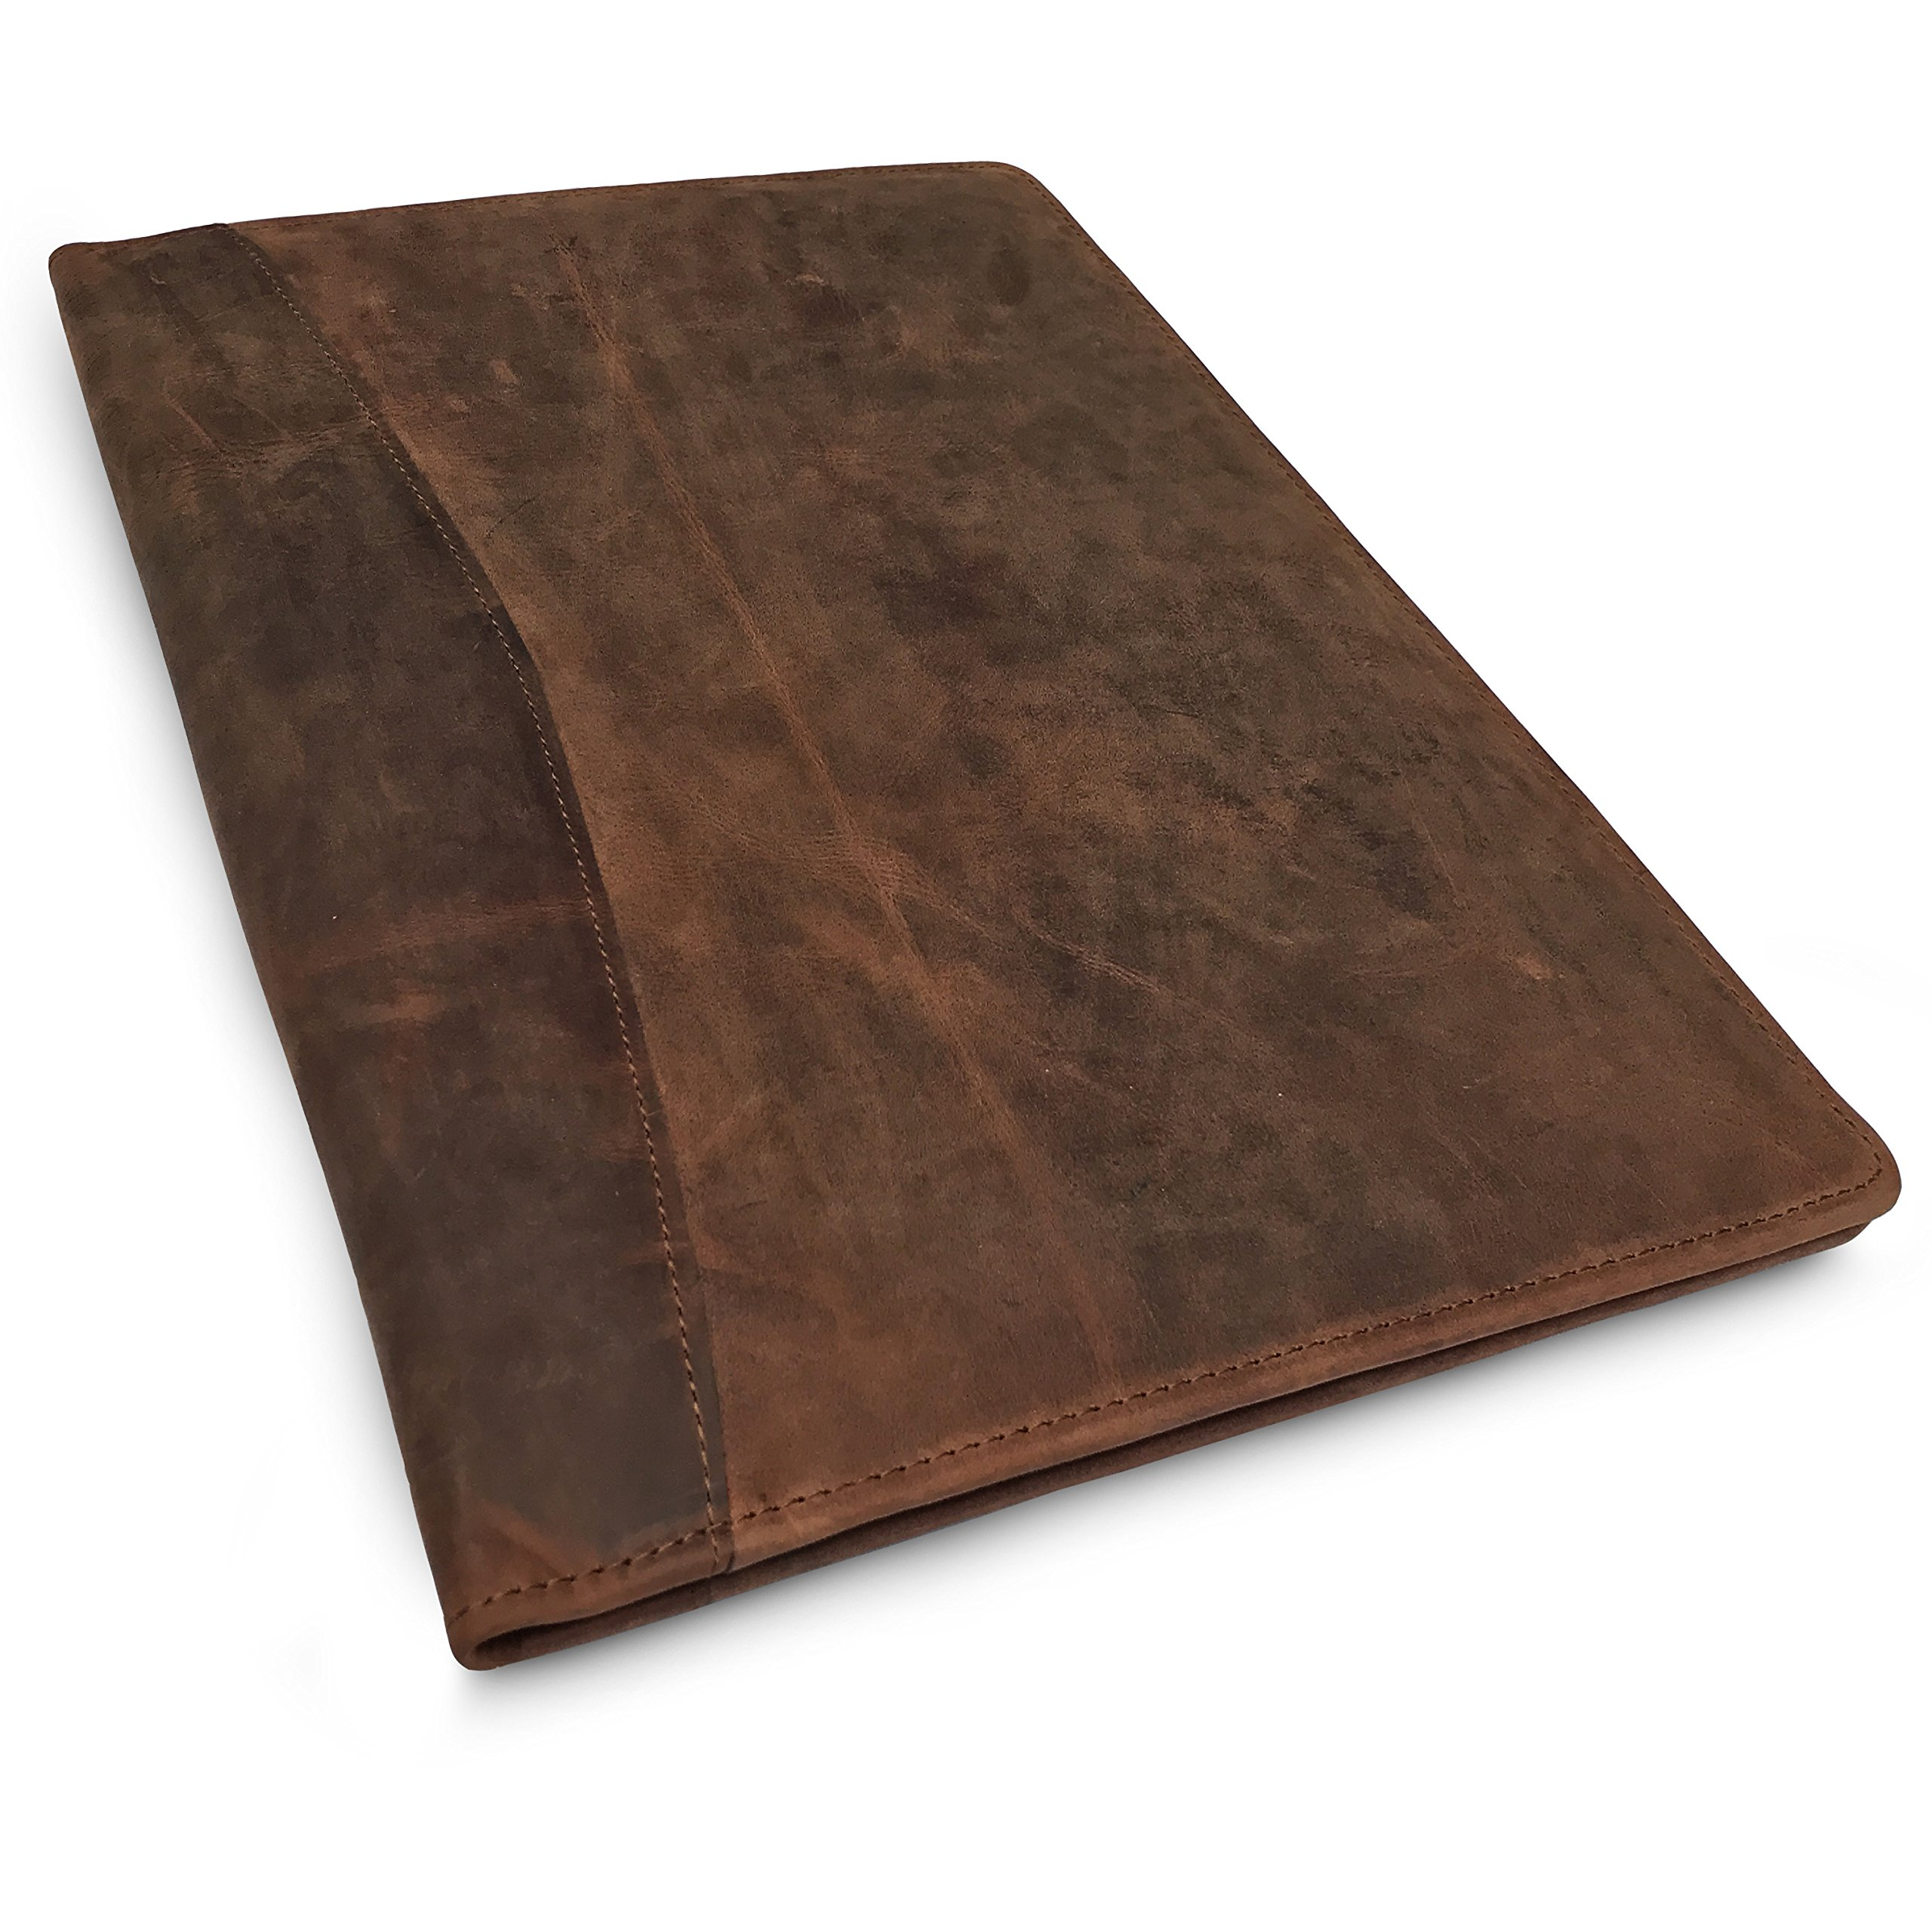 Leather Portfolio Professional Resume Padfolio - Document Folder & Organizer Folio for Letter-Sized/A4 Writing Pad with Business Card Holder, Ideal Gift Portfolios for Men + Women (Russet Brown)